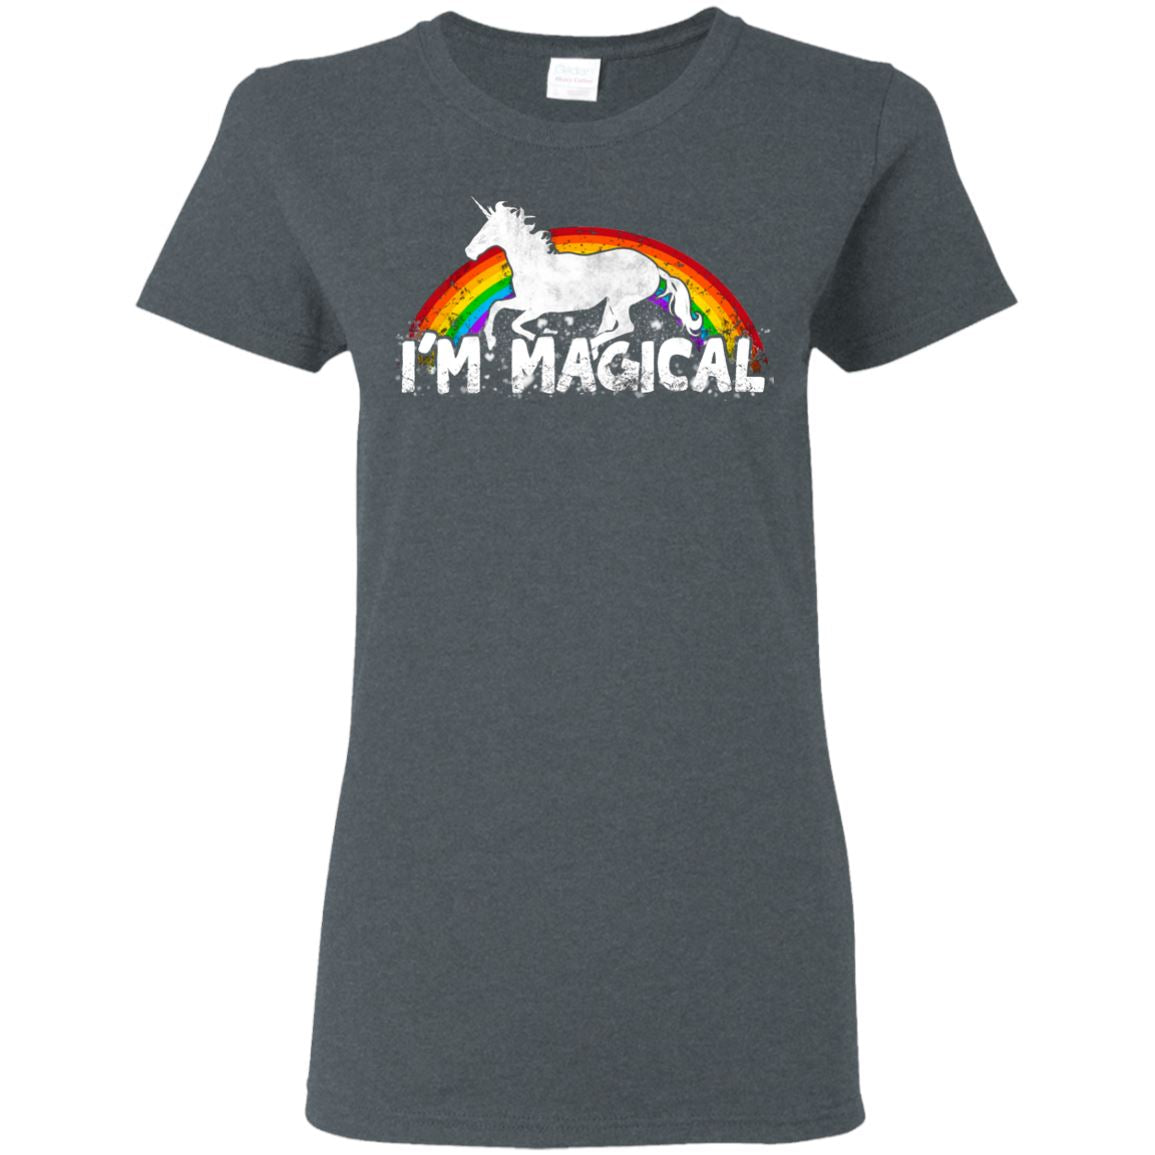 I'm Magical Ladies' T-Shirt Apparel Dark Heather S